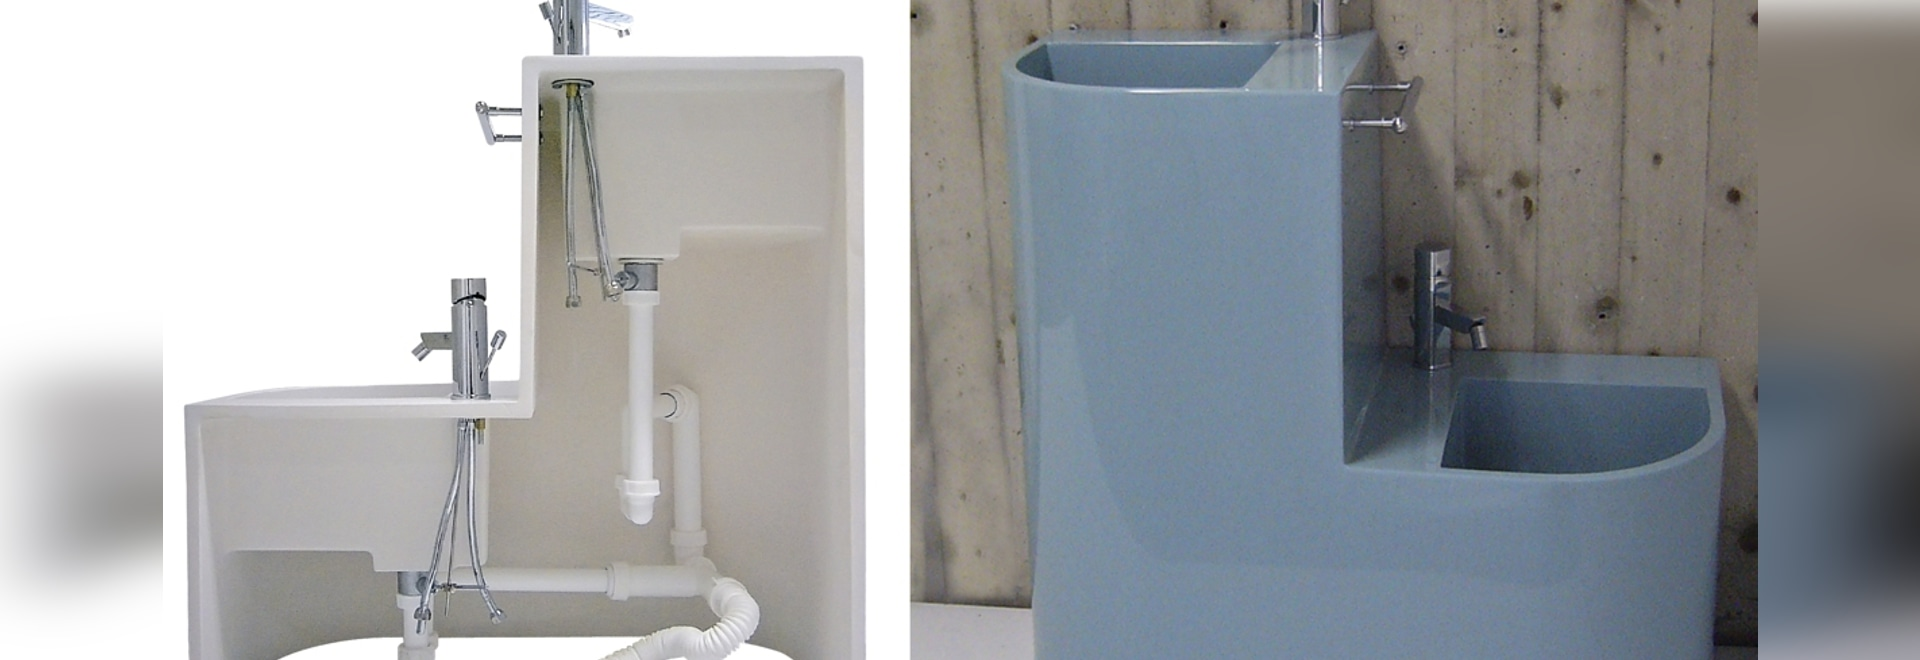 ALL, lavabo speciale